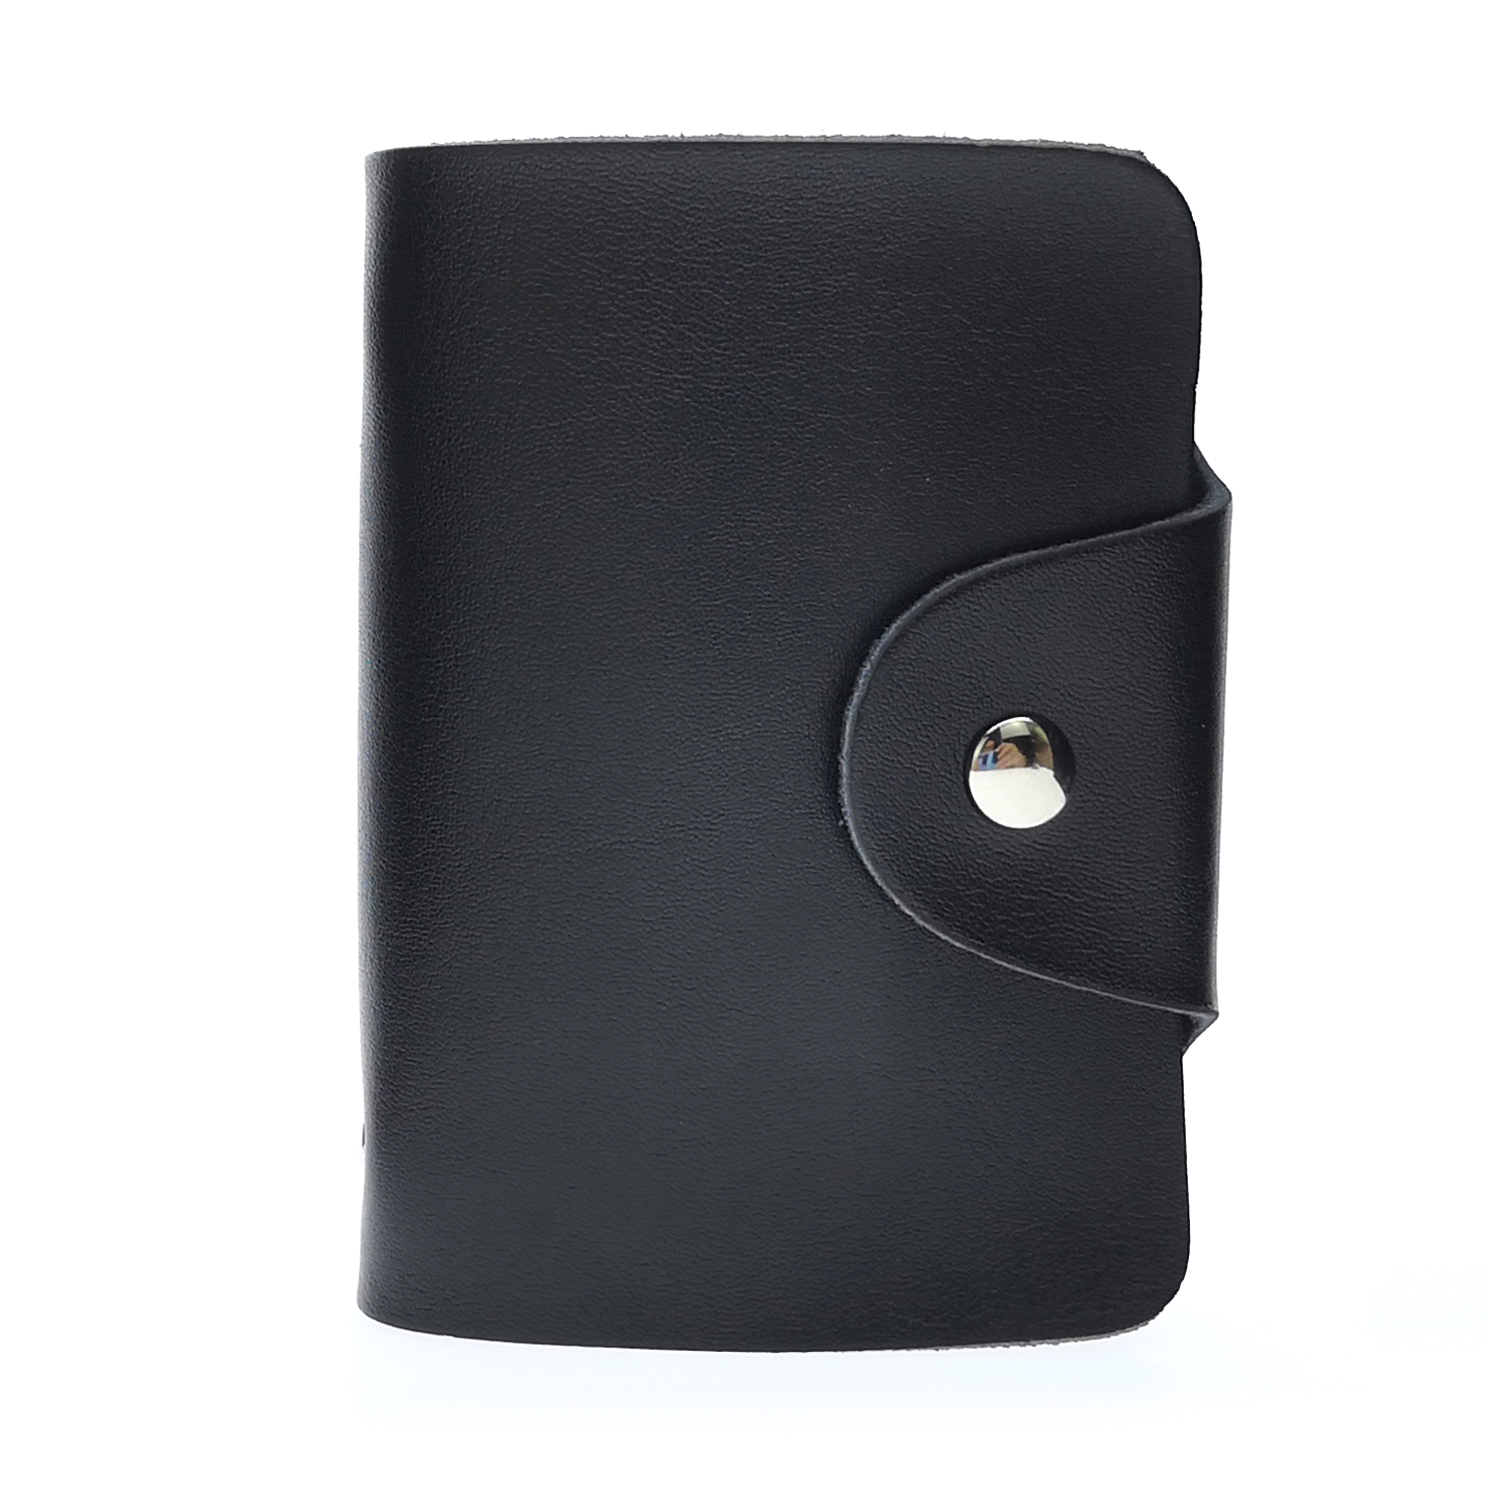 ZENTEII Genuine Leather Small Card Case Credit Card Holder image